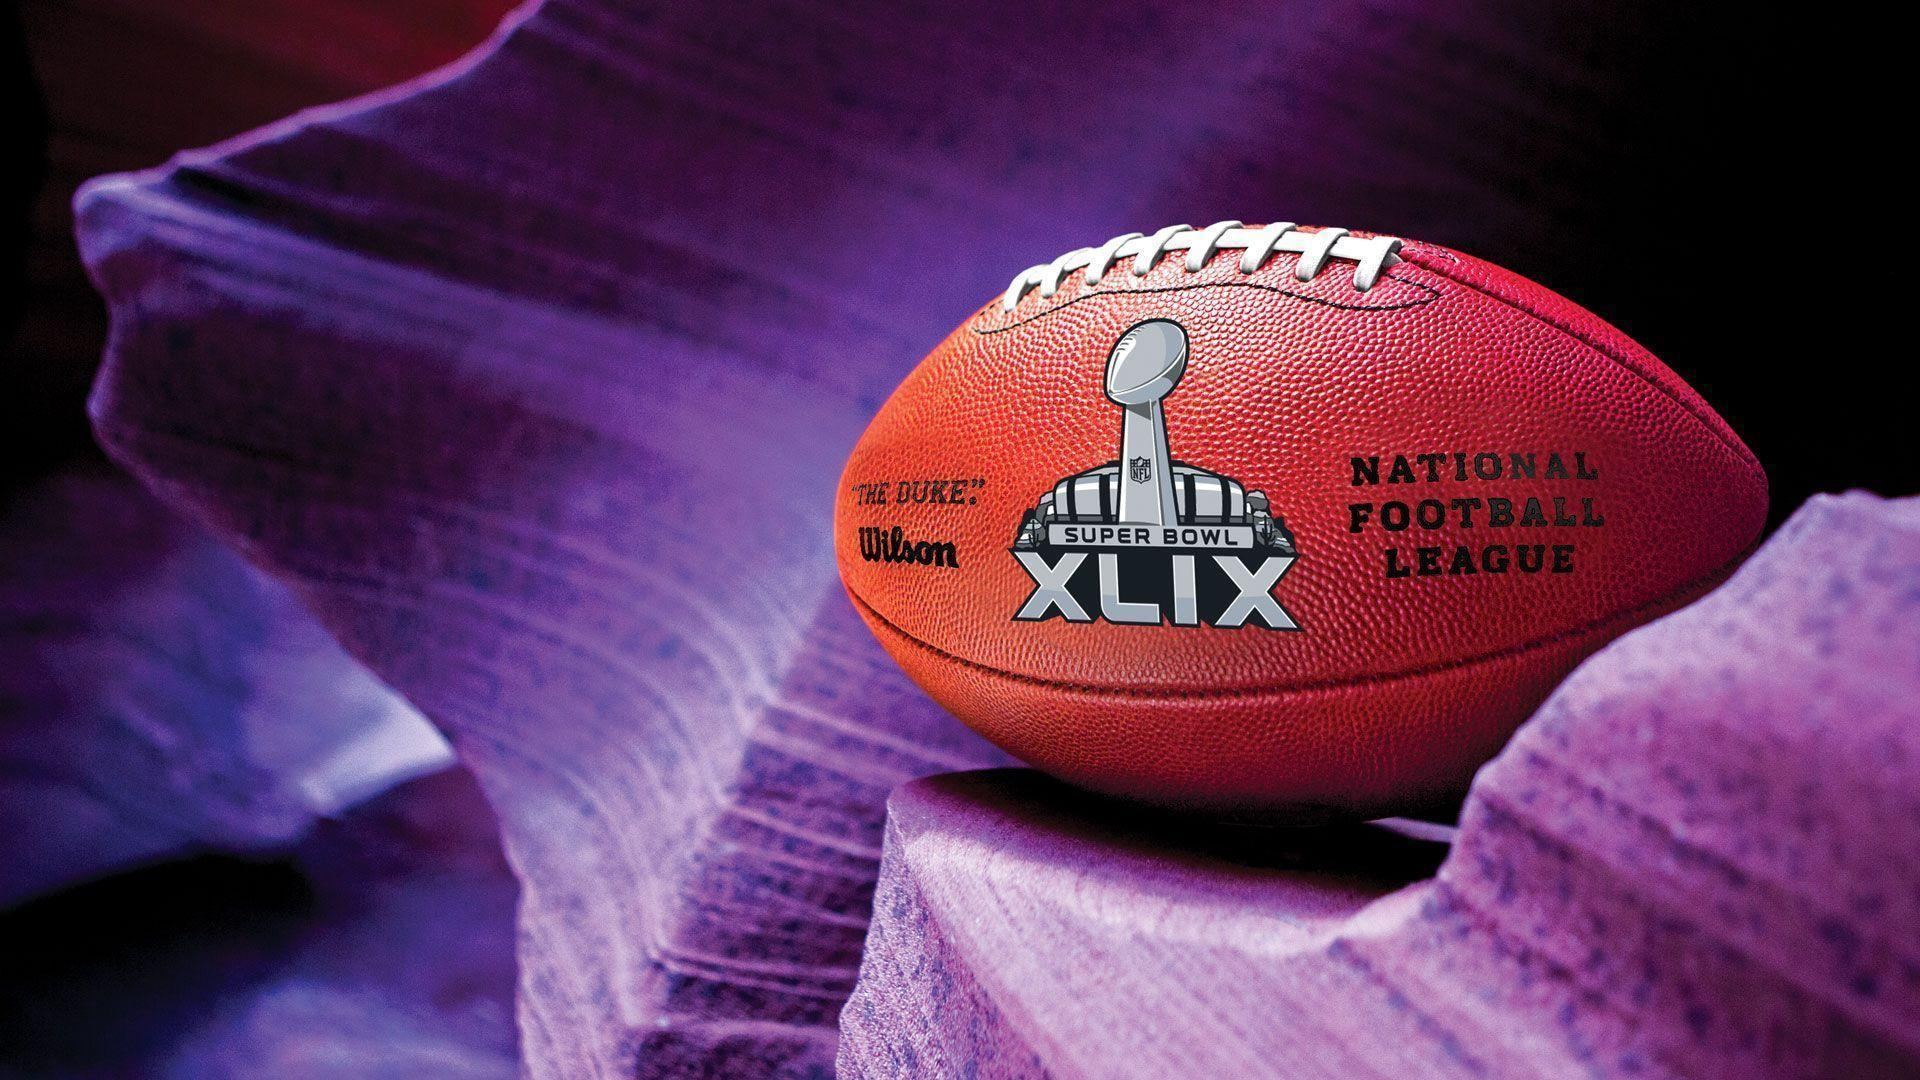 Super Bowl XLIX ★ Arizona February 1, 2015 at University of